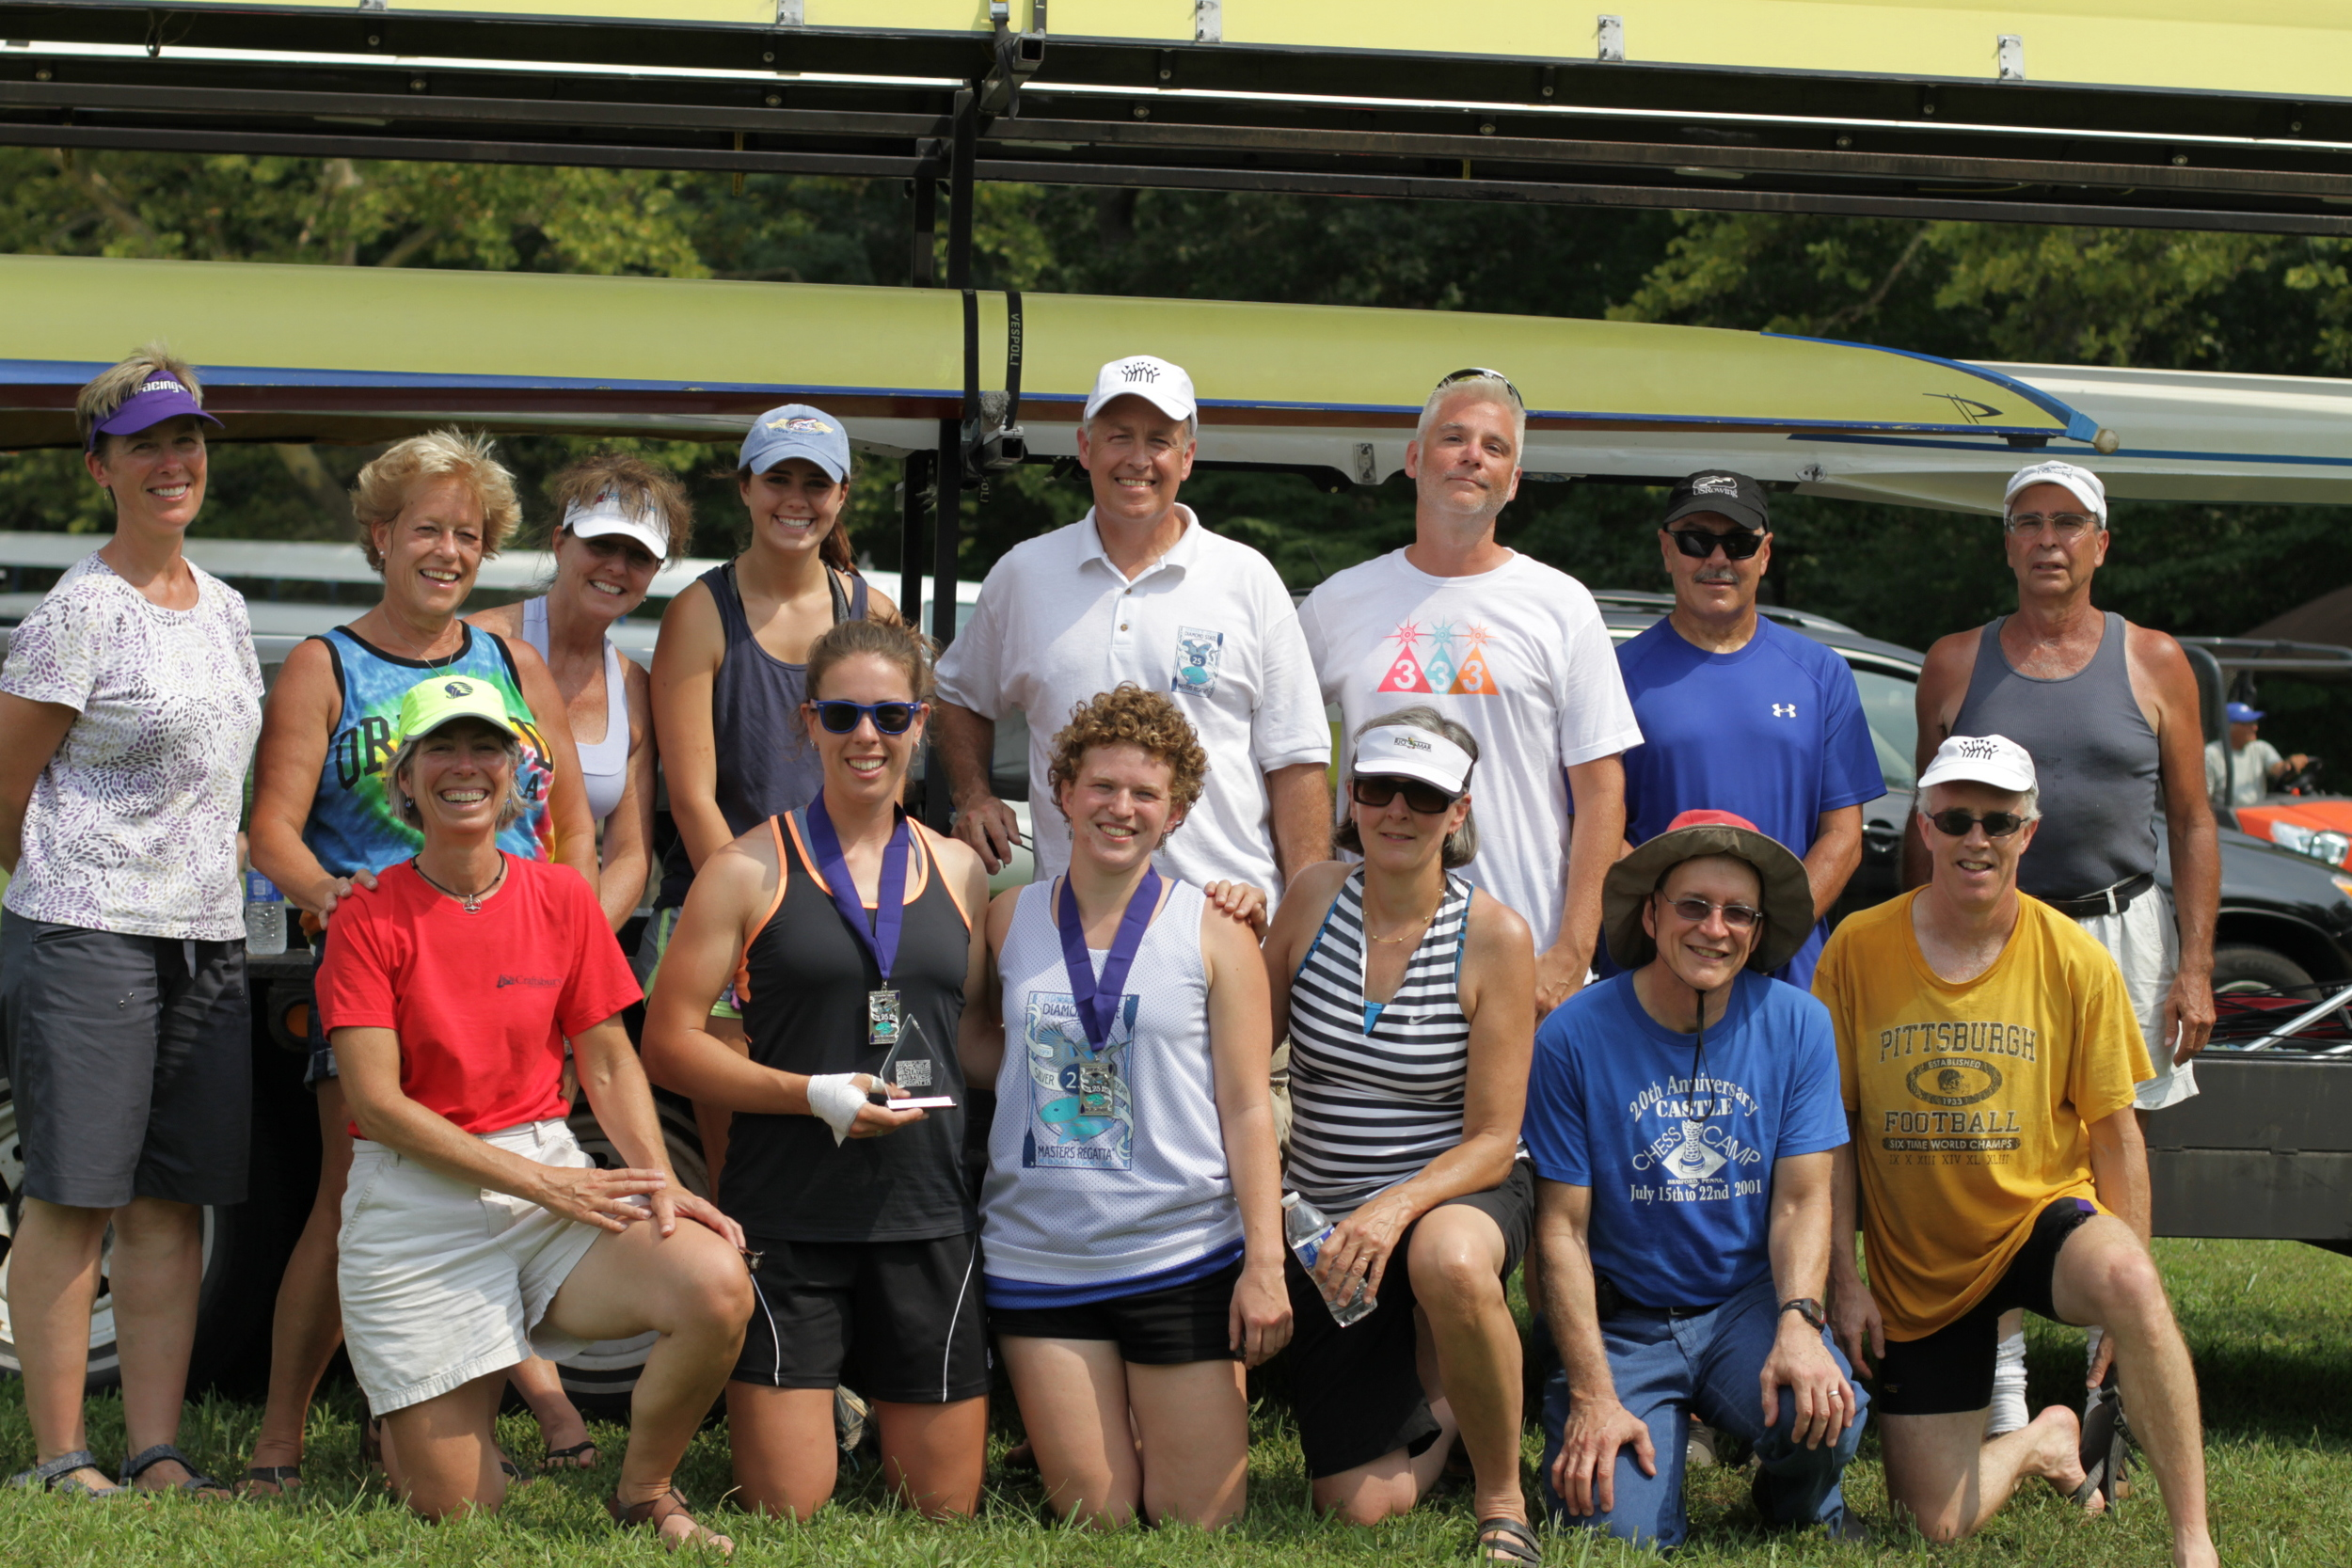 Steel City Rowing Club Diamond State Regatta 2015.JPG